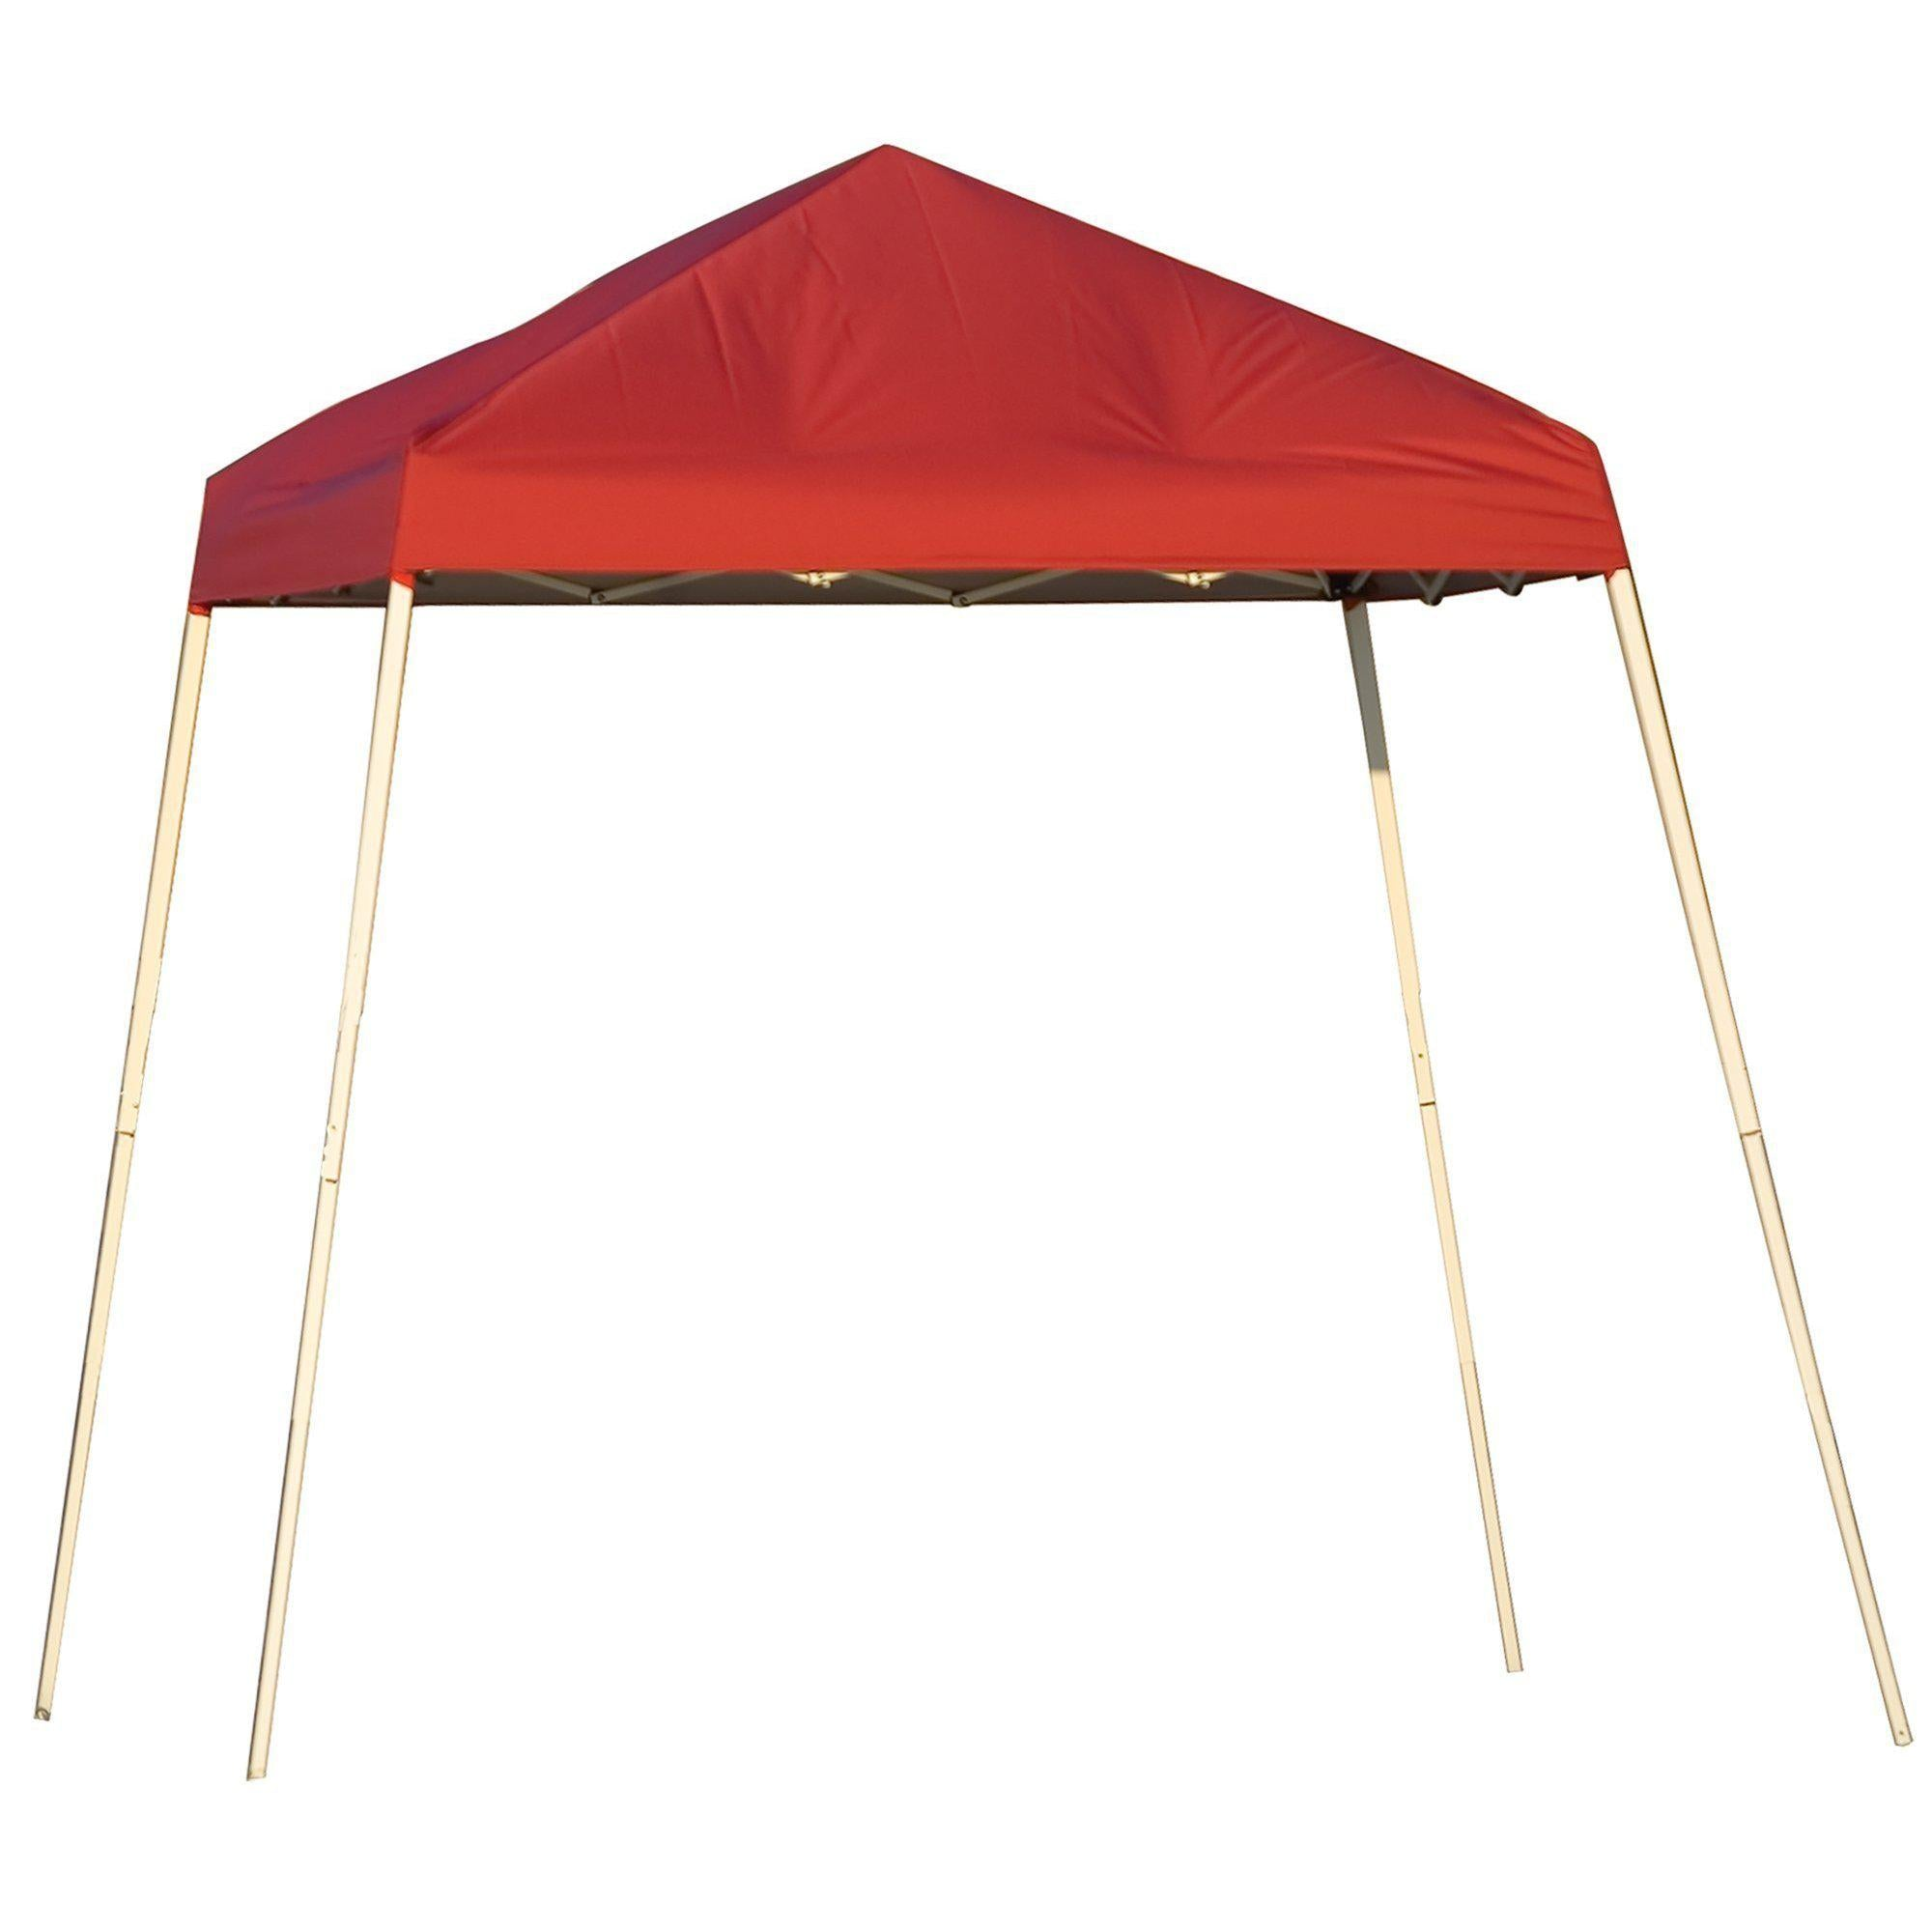 ShelterLogic Slant Leg Pop-Up Canopy with Carry Bag, Red, 8 x 8 ft.